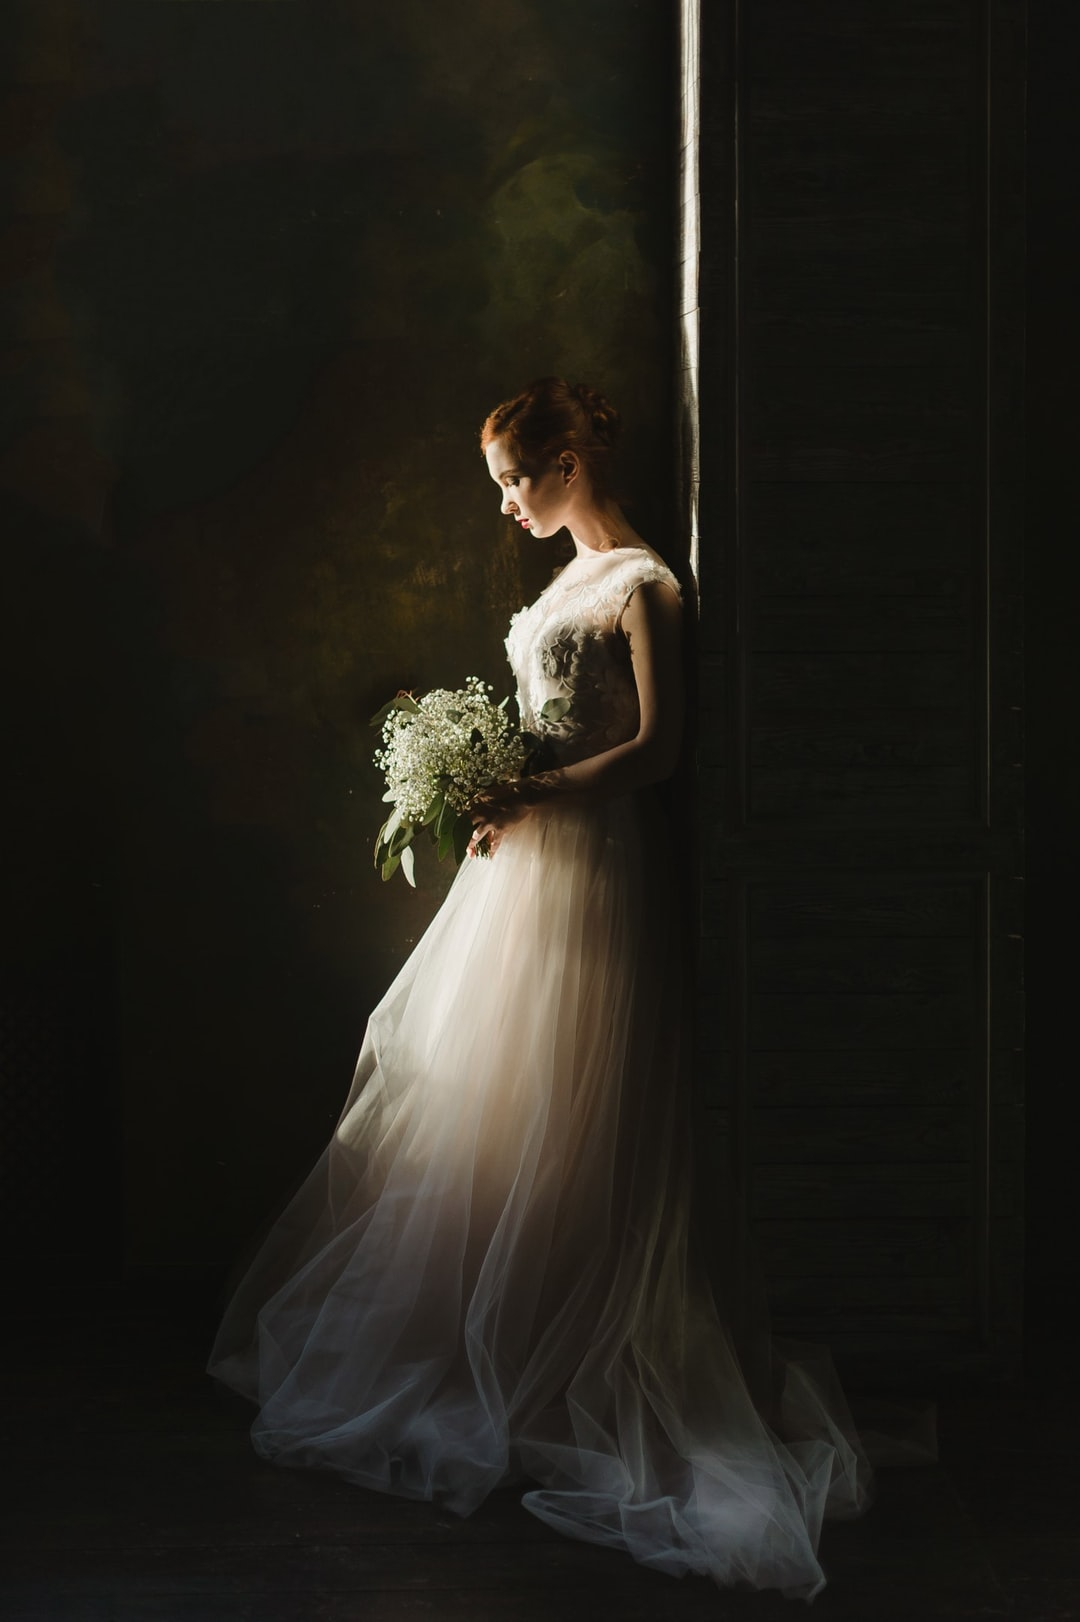 Bride surrounded by darkness